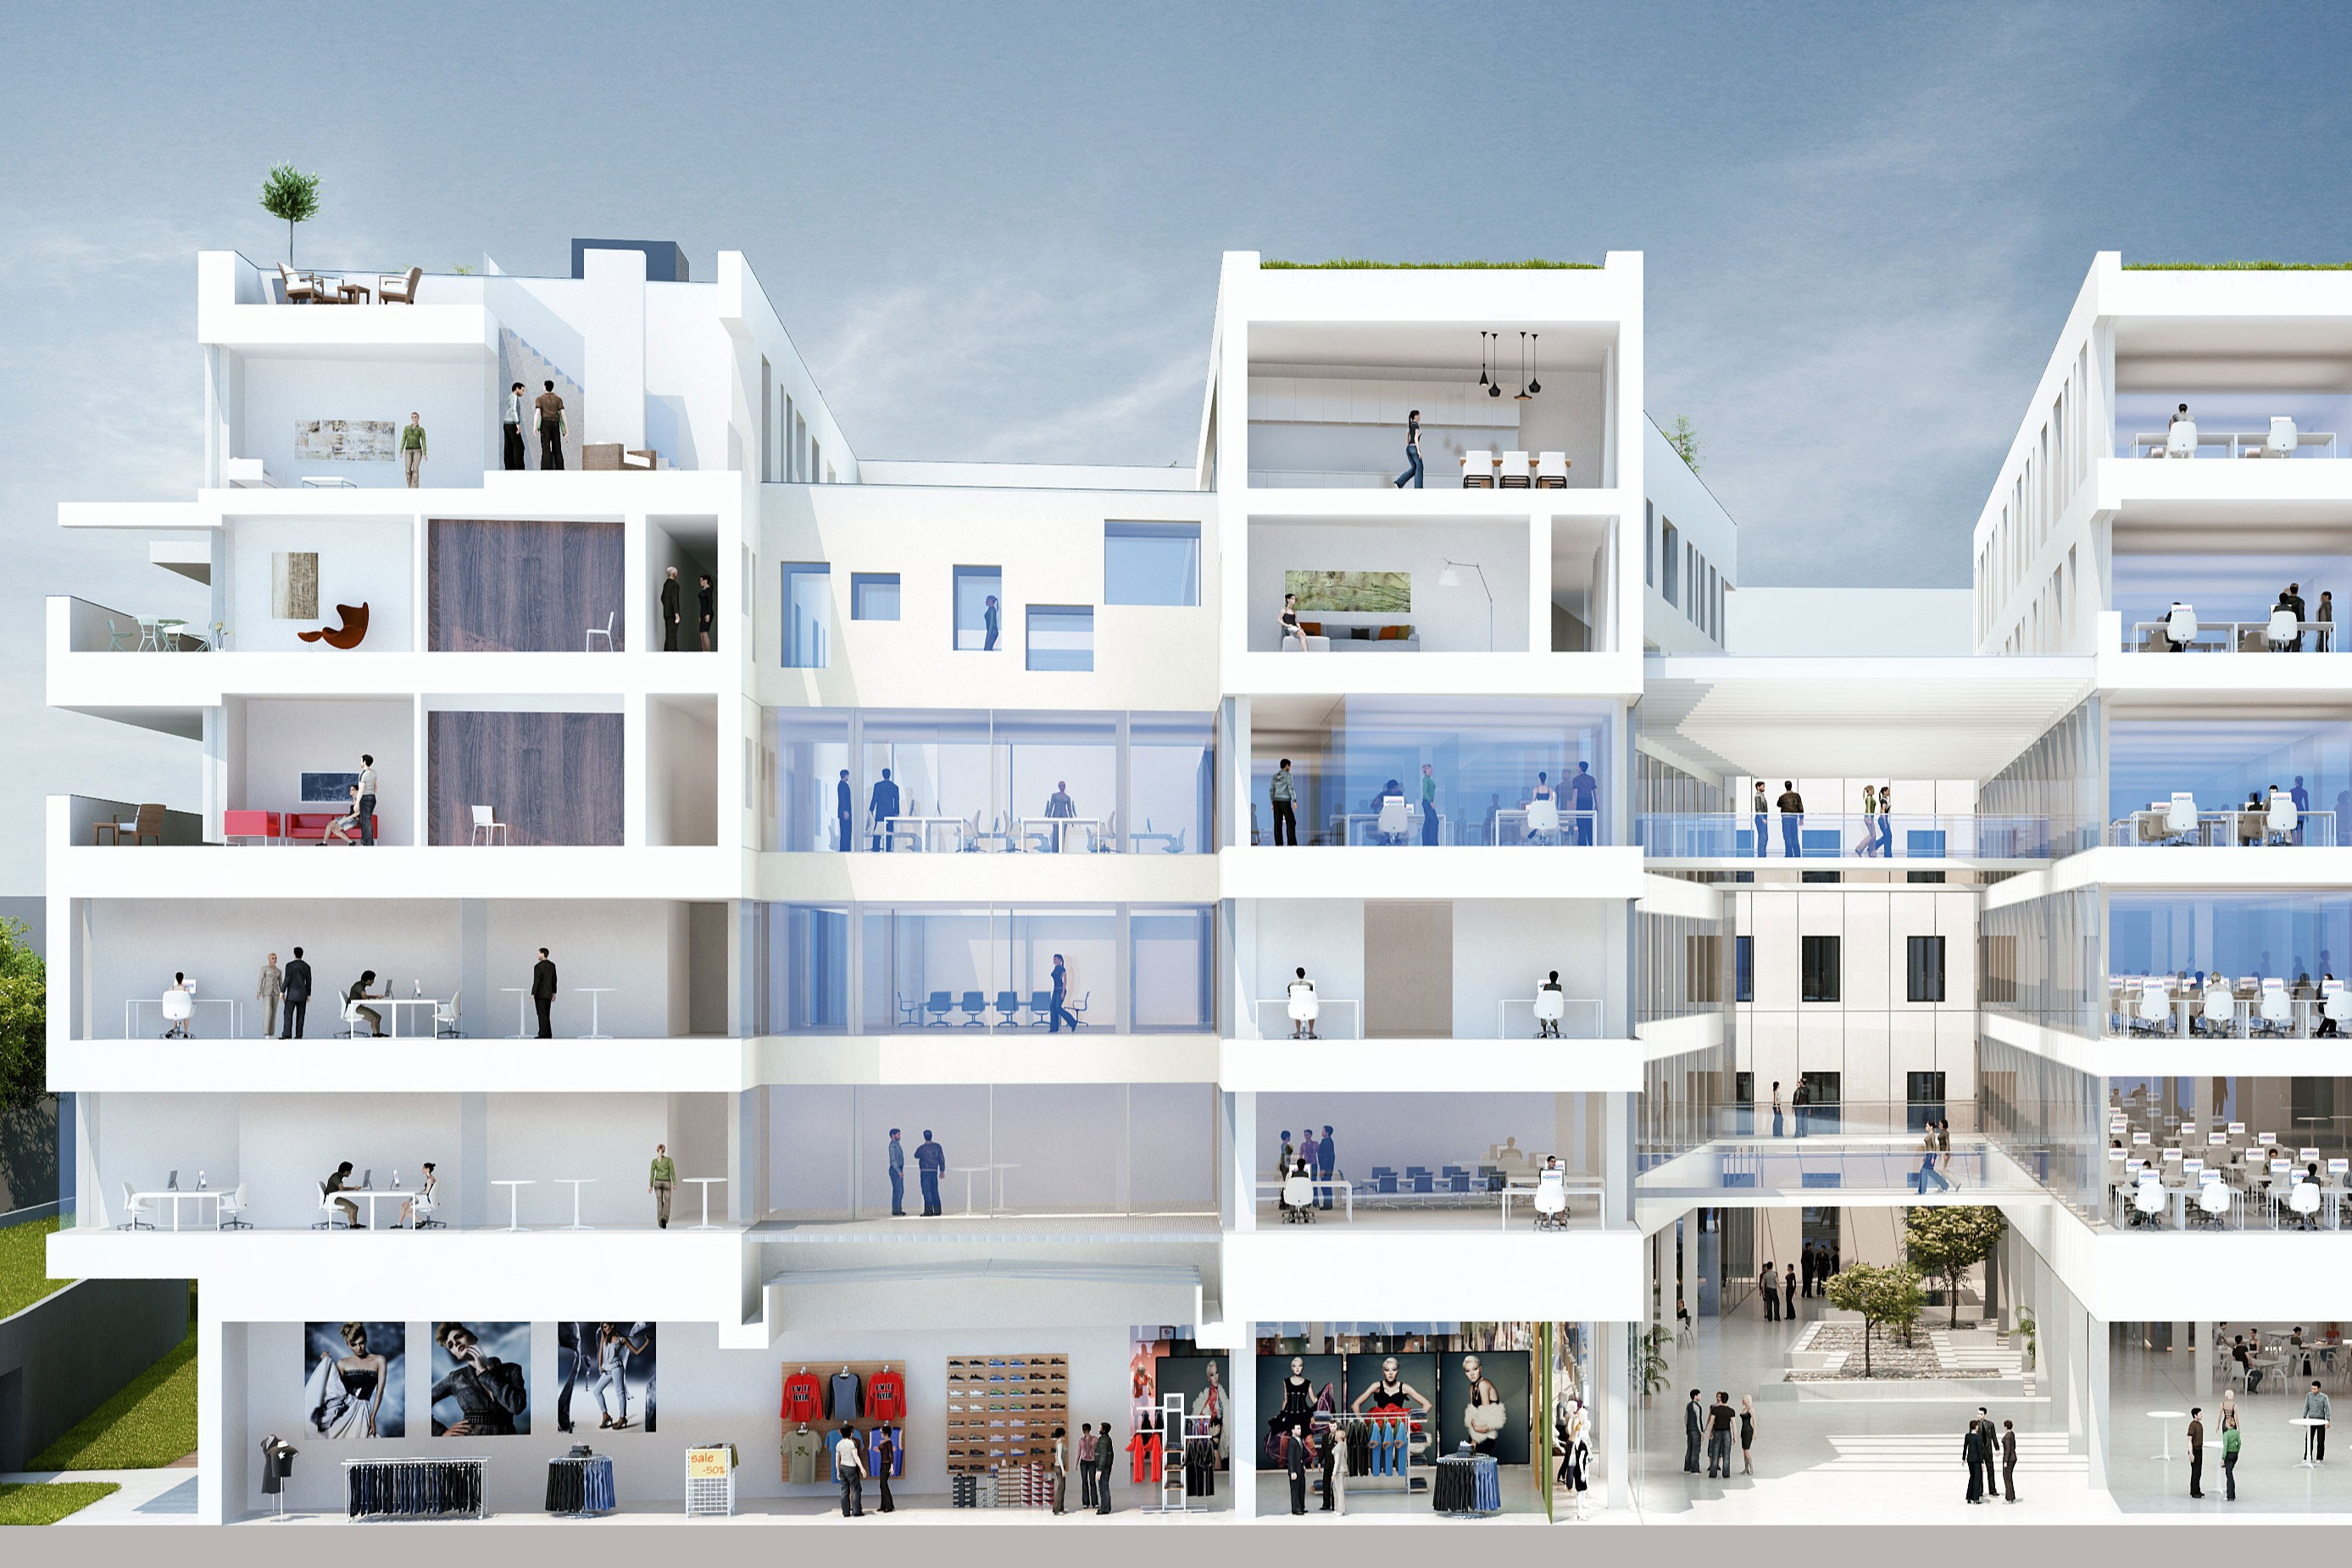 Promenaden Galerien, Linz, AT<br><span class='image_copyright'>Halle 1/Renderwerk.at</span><br>